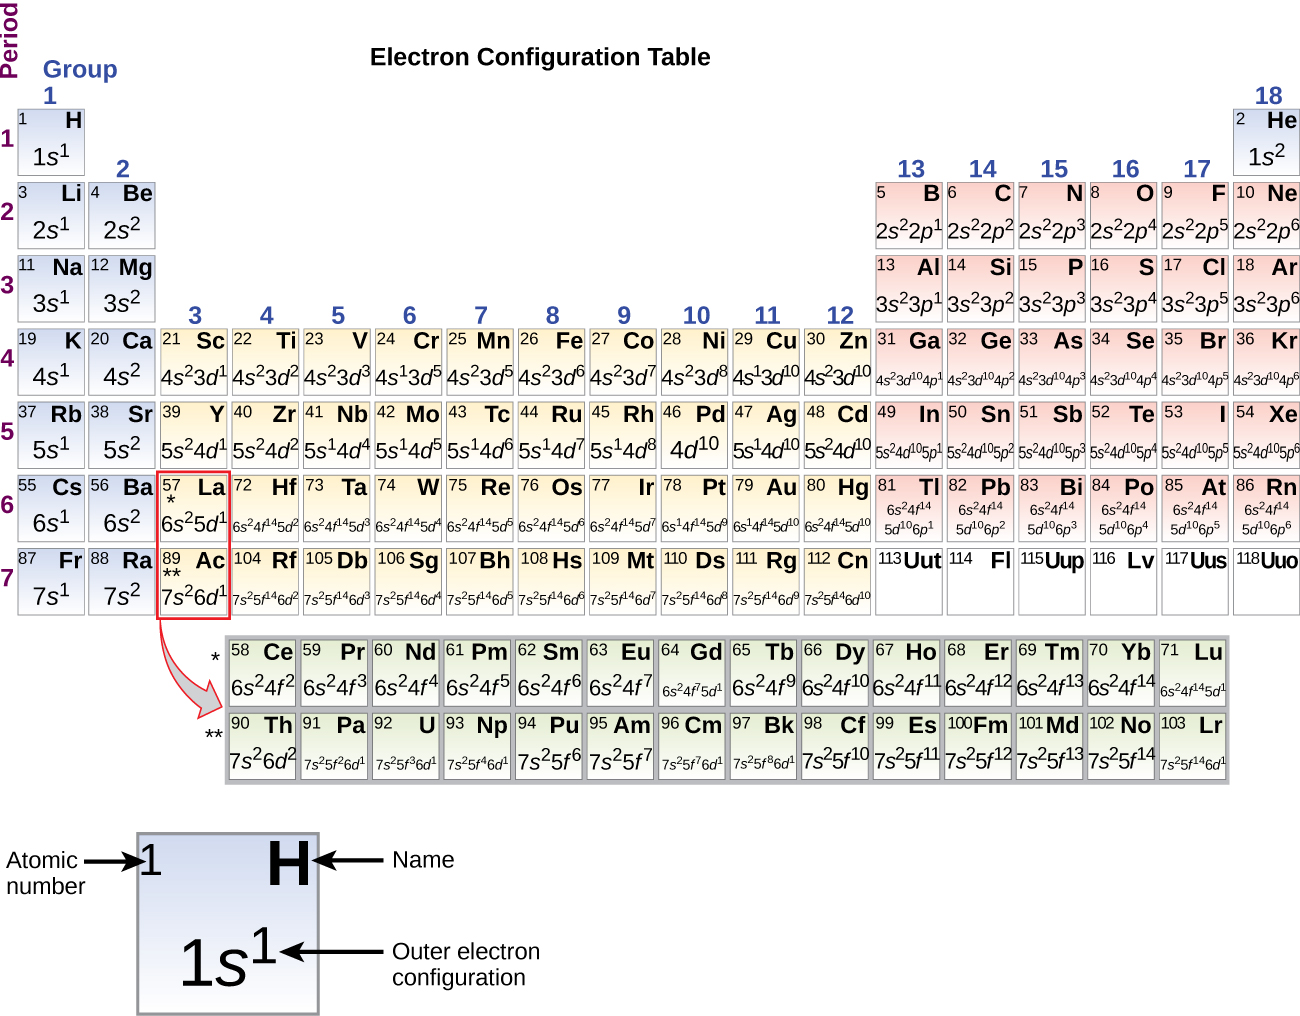 "A periodic table, entitled, ""Electron Configuration Table"" is shown. The table includes the outer electron configuration information, atomic numbers, and element symbols for all elements. A square for the element hydrogen is pulled out beneath the table to provide detail. The blue shaded square includes the atomic number in the upper left corner, which is 1, the element symbol, H in the upper right corner, and the outer electron configuration in the lower, central portion of the square. For H, this is 1 s superscript 1."